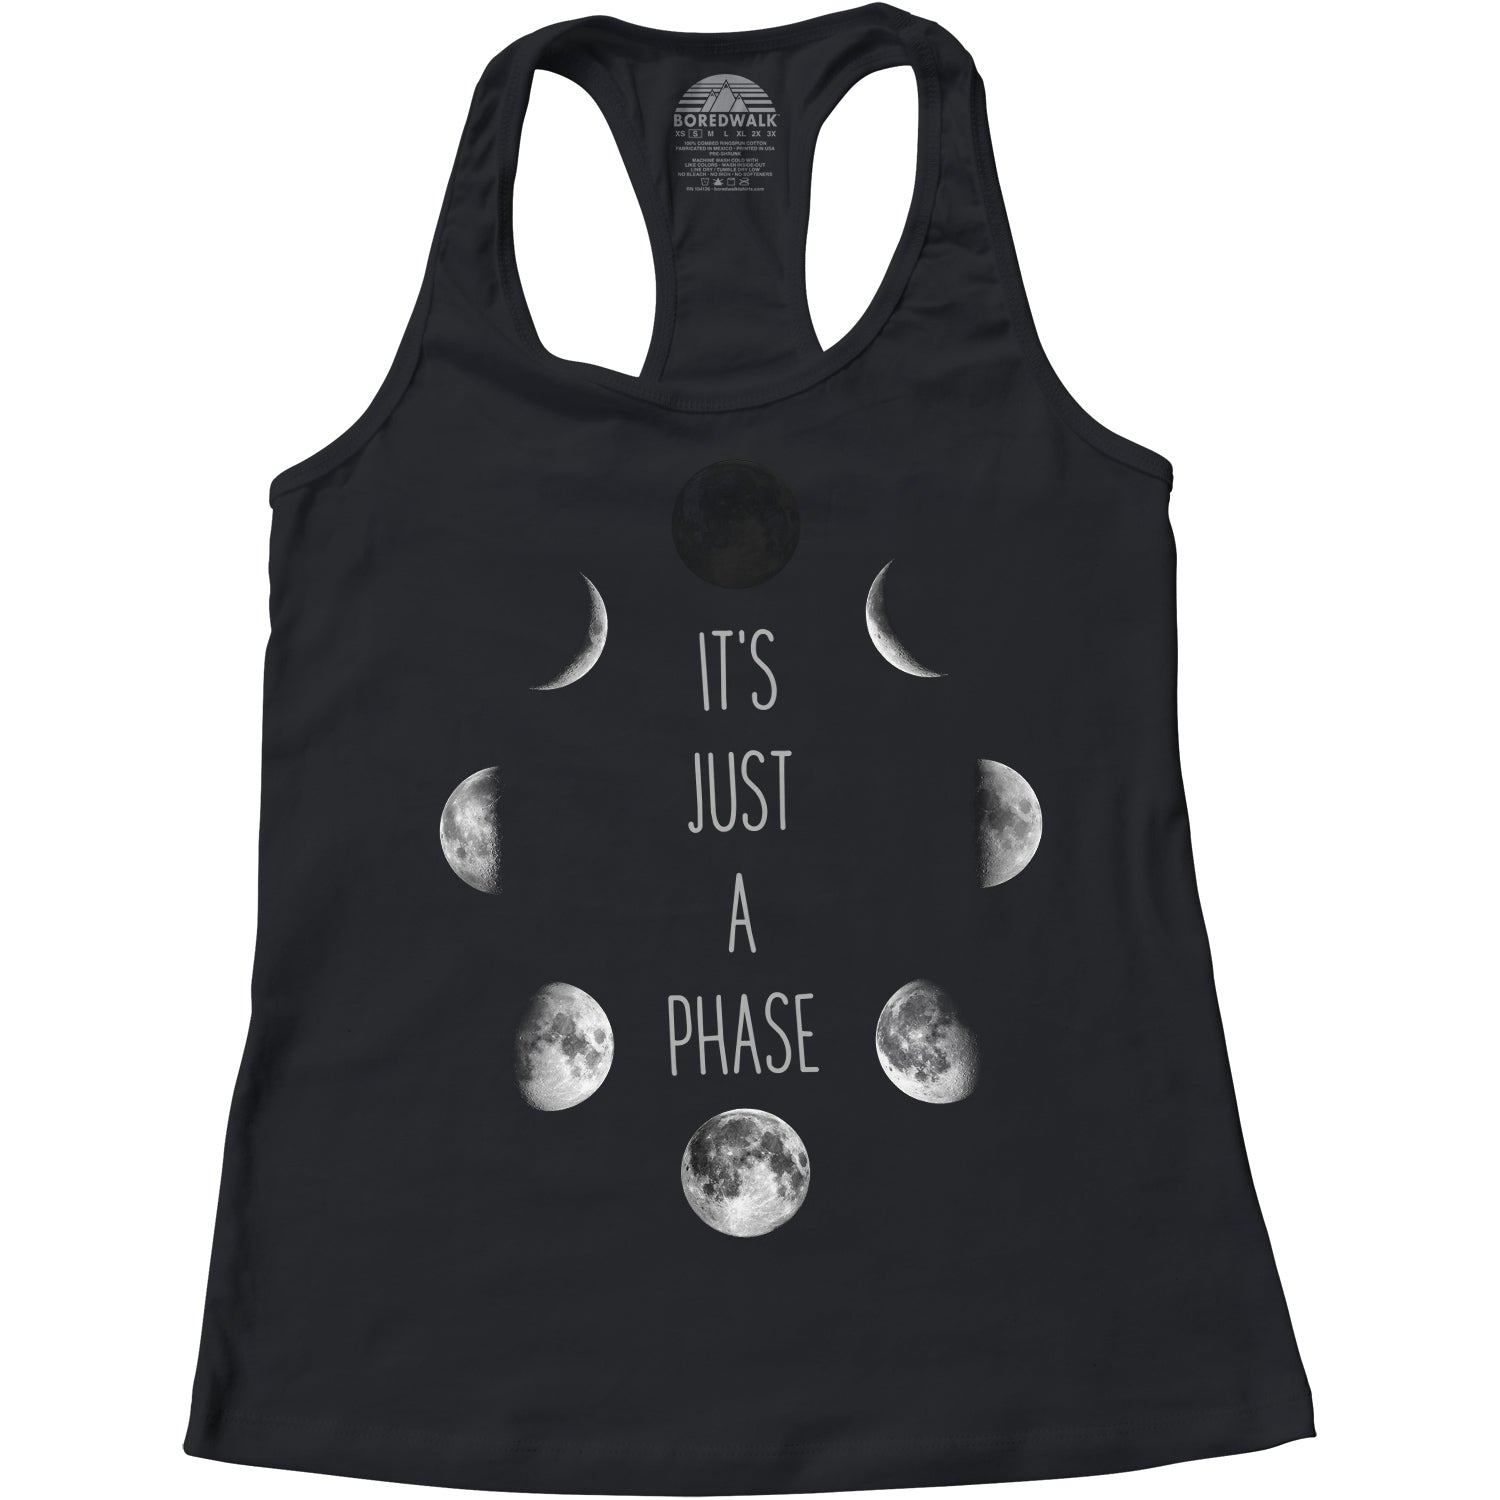 Women's It's Just a Phase Moon Racerback Tank Top